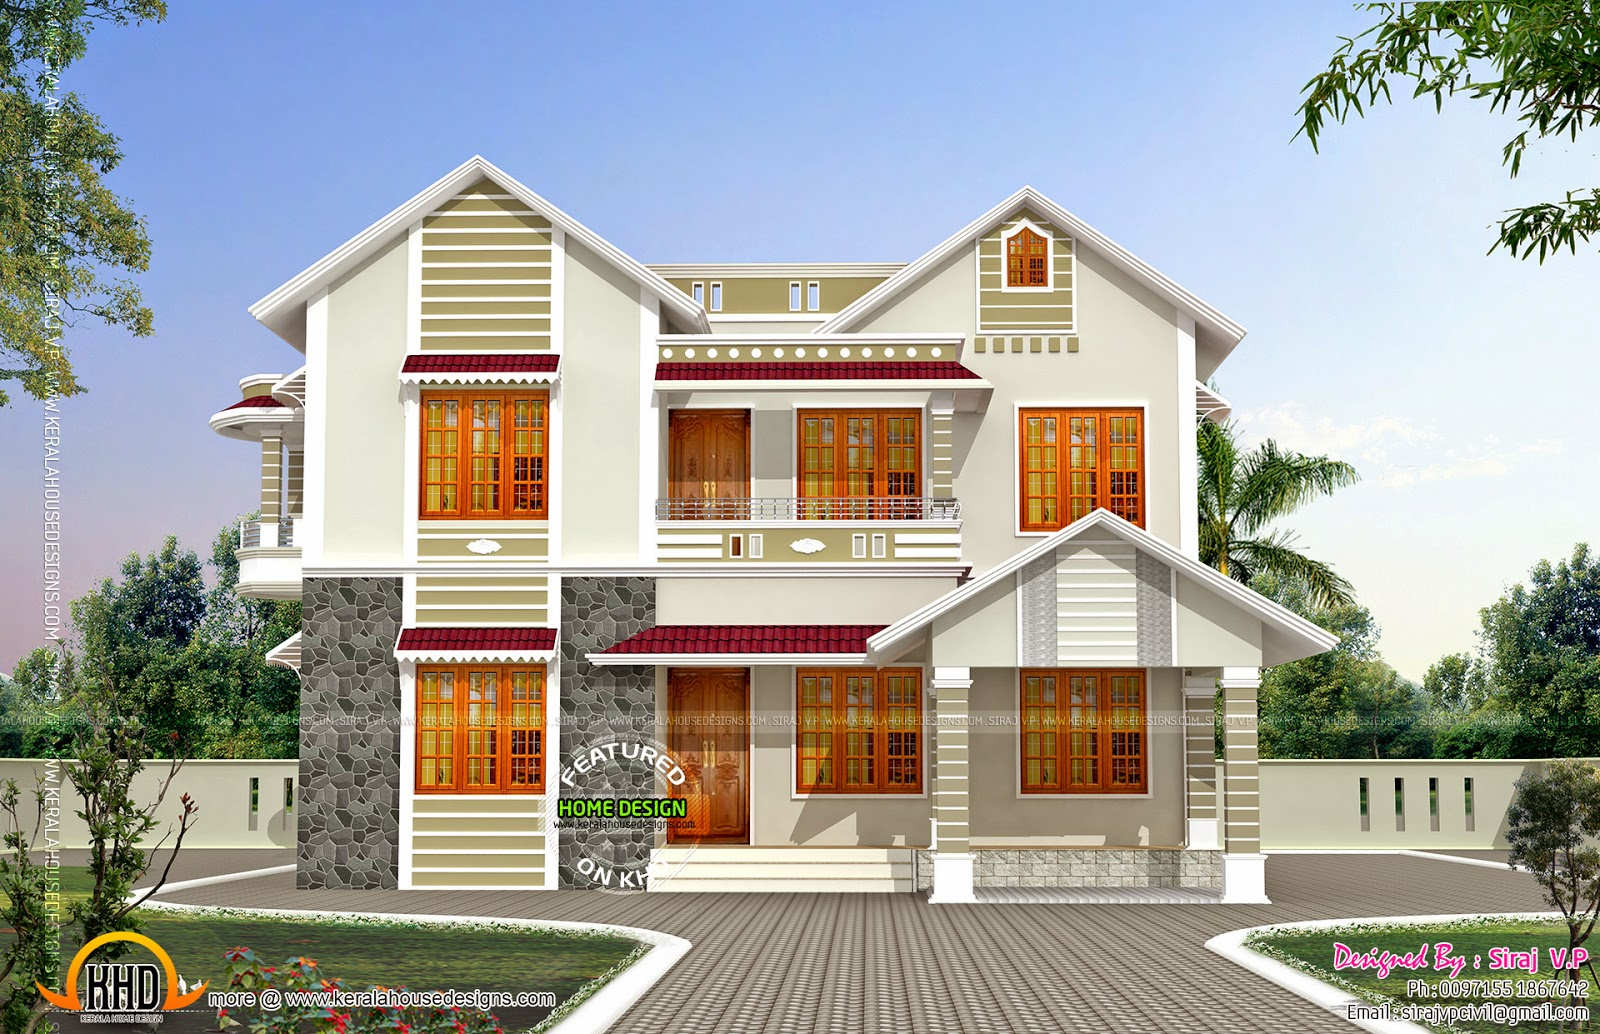 Image gallery home design front view for Main front house design